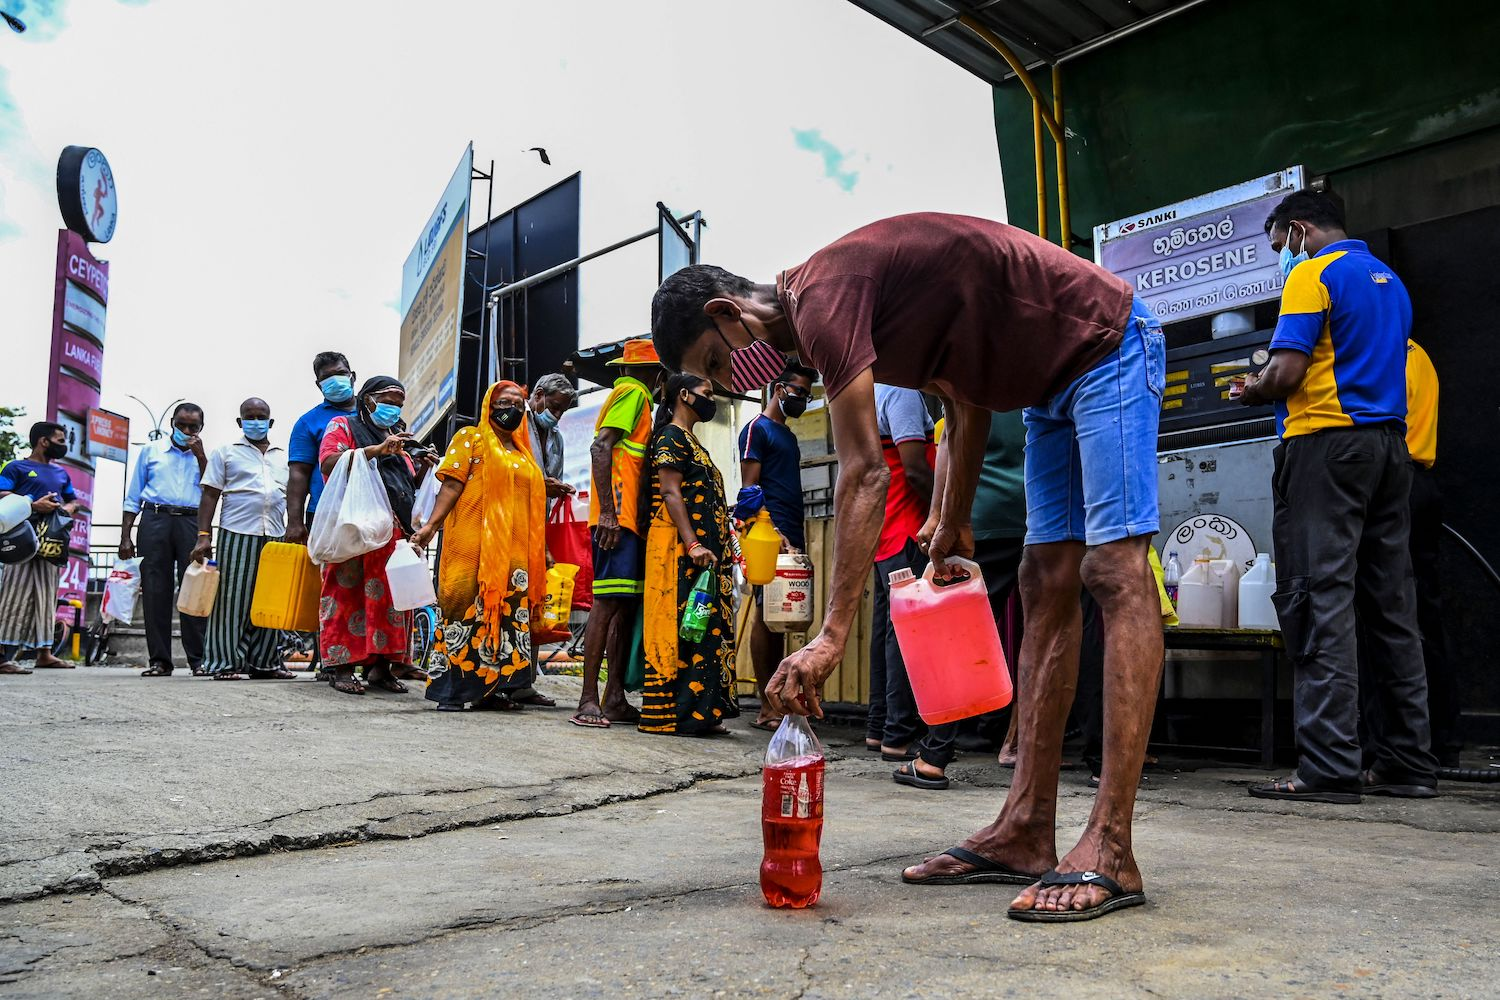 People stand in a queue to buy kerosene oil used in cooking stoves in Colombo, Sri Lanka.